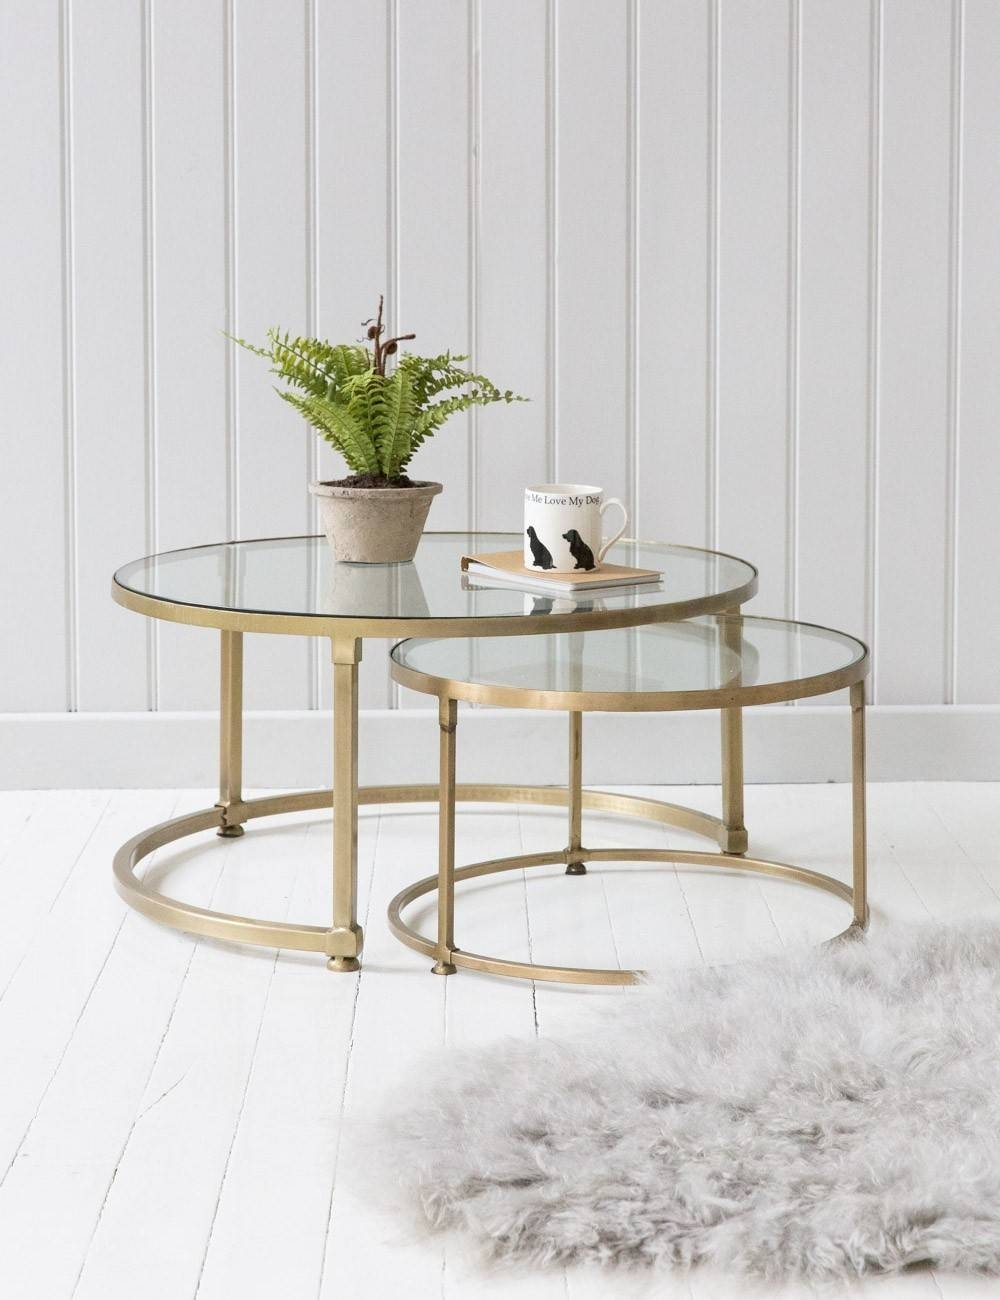 Furniture Round Coffee Table Sets Ideas: Gold Metal Frame Legs pertaining to Glass Gold Coffee Tables (Image 16 of 30)